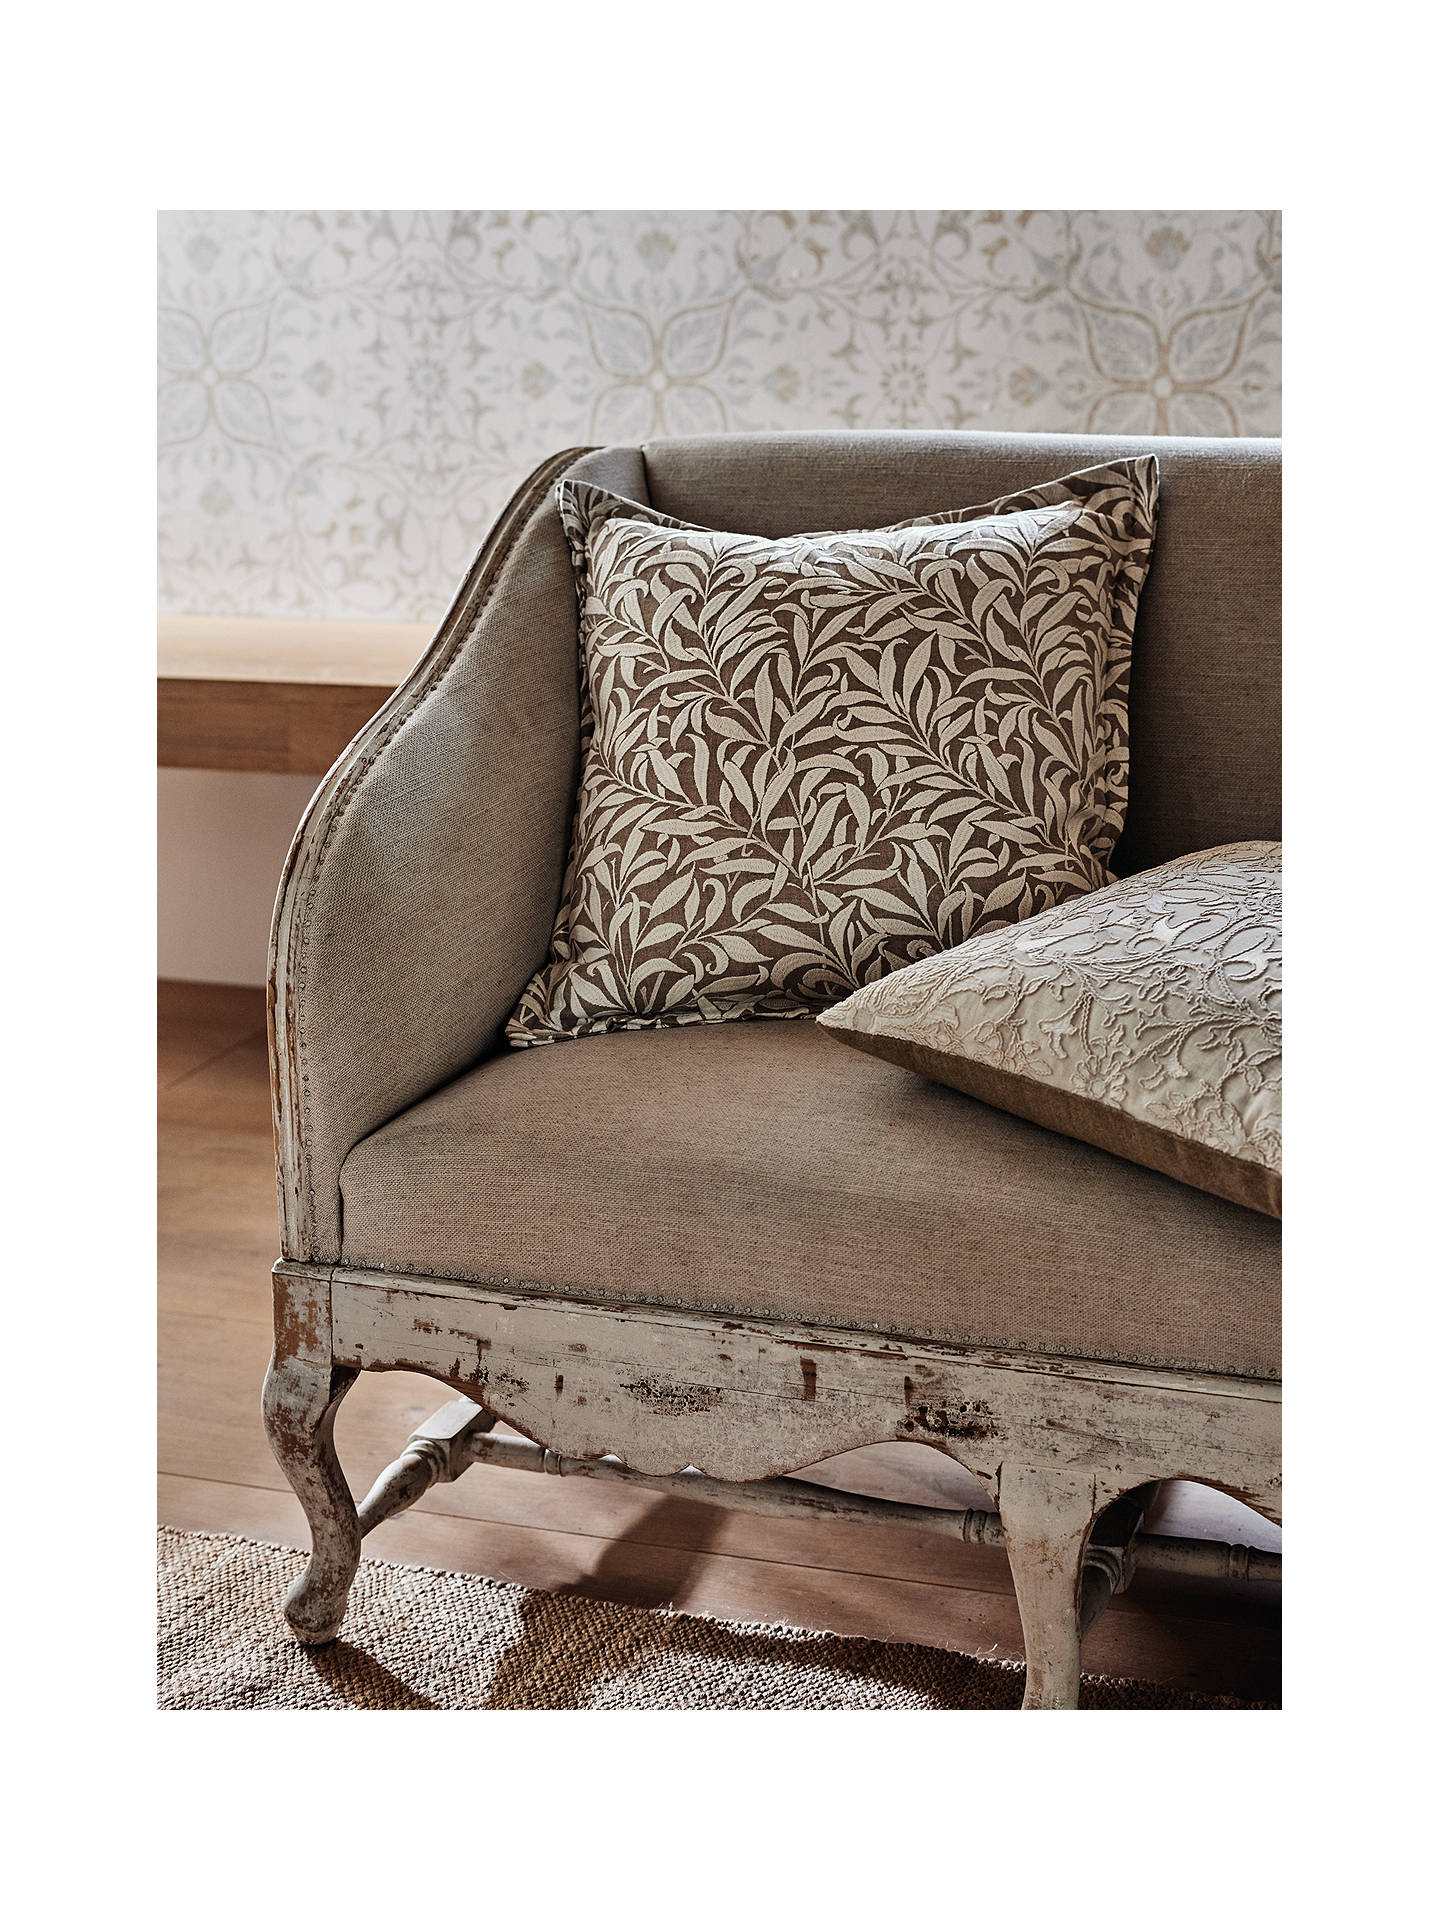 Buy Morris & Co. Pure Willow Boughs Furnishing Fabric, Flax Online at johnlewis.com